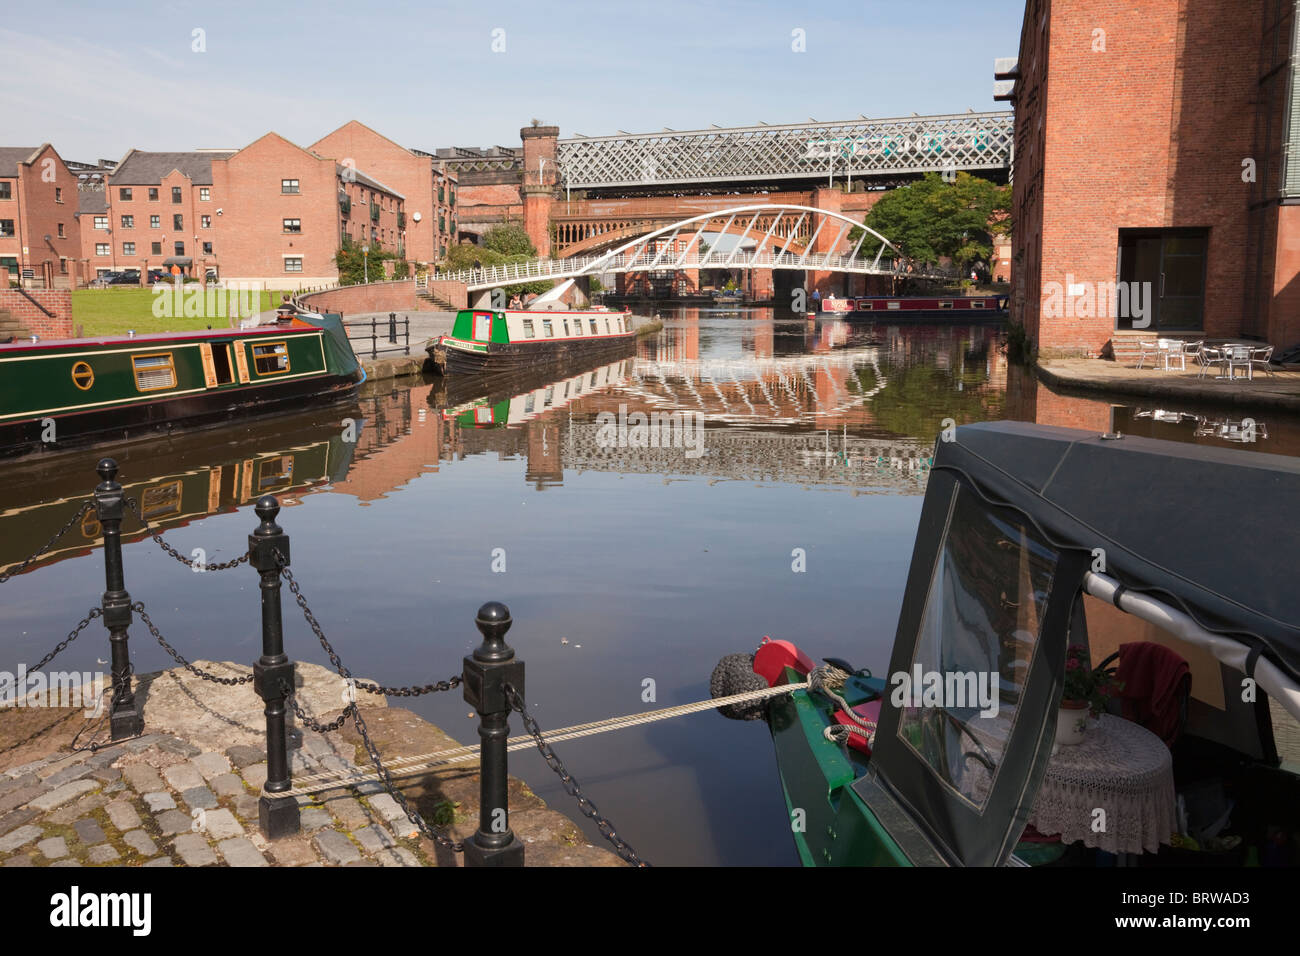 Castlefield, Manchester, England, UK, Europe. Narrowboats in the Bridgewater Canal basin in Urban Heritage Park. Stock Photo